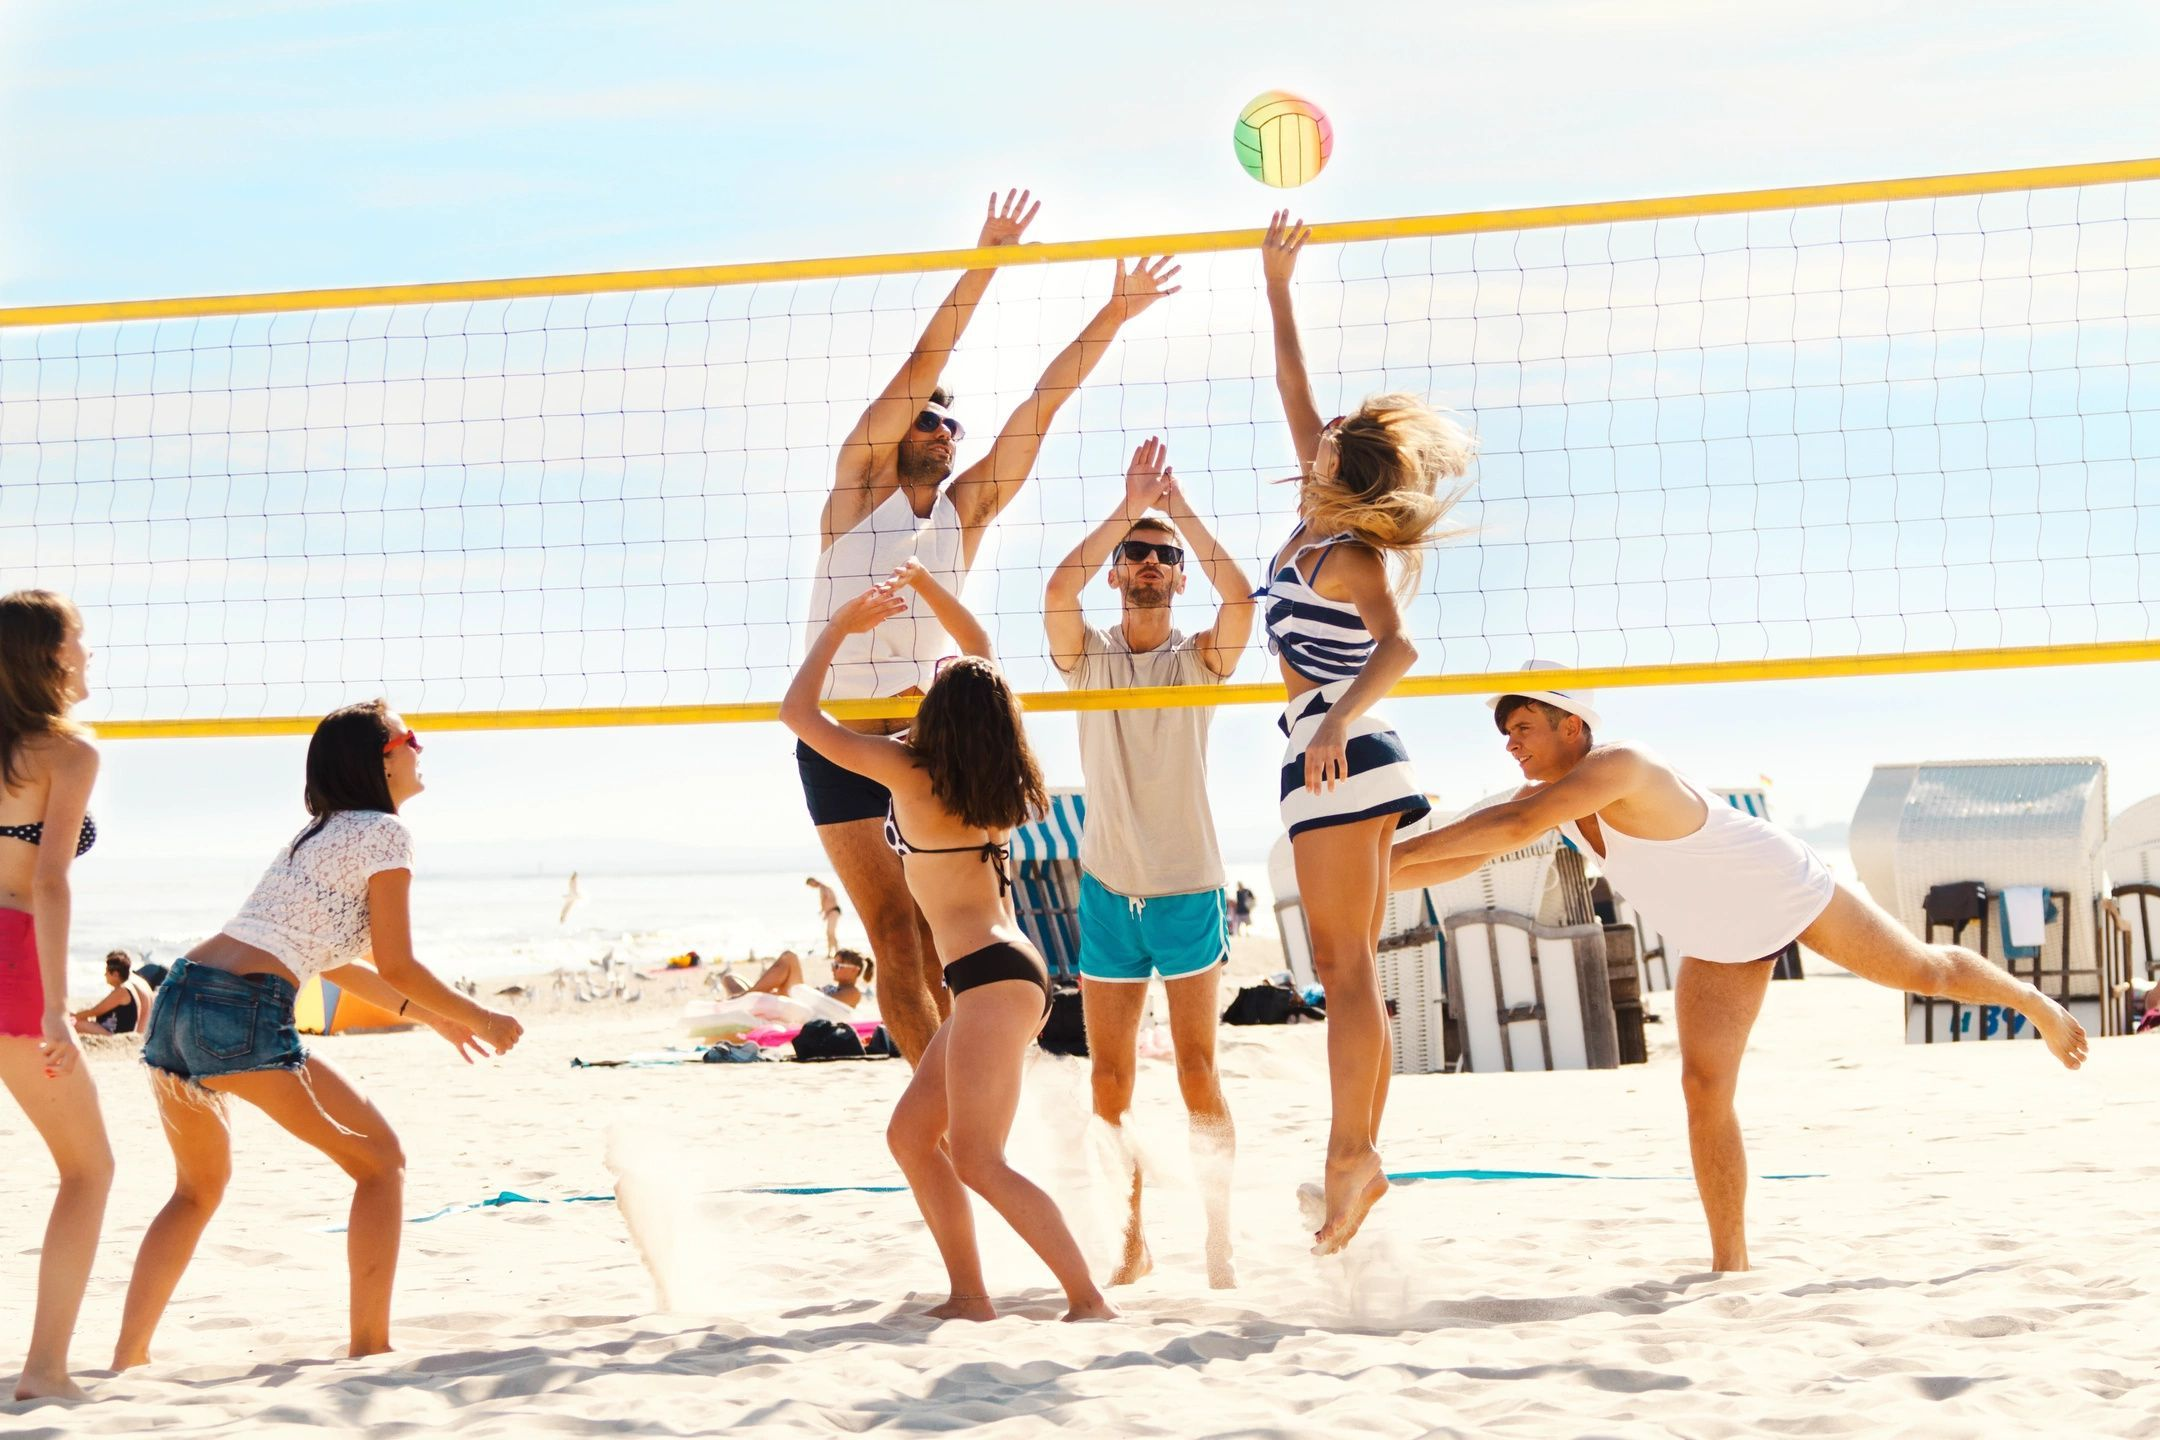 Ace Swift Volleyball Youth Games Fun Outdoor Games Sports